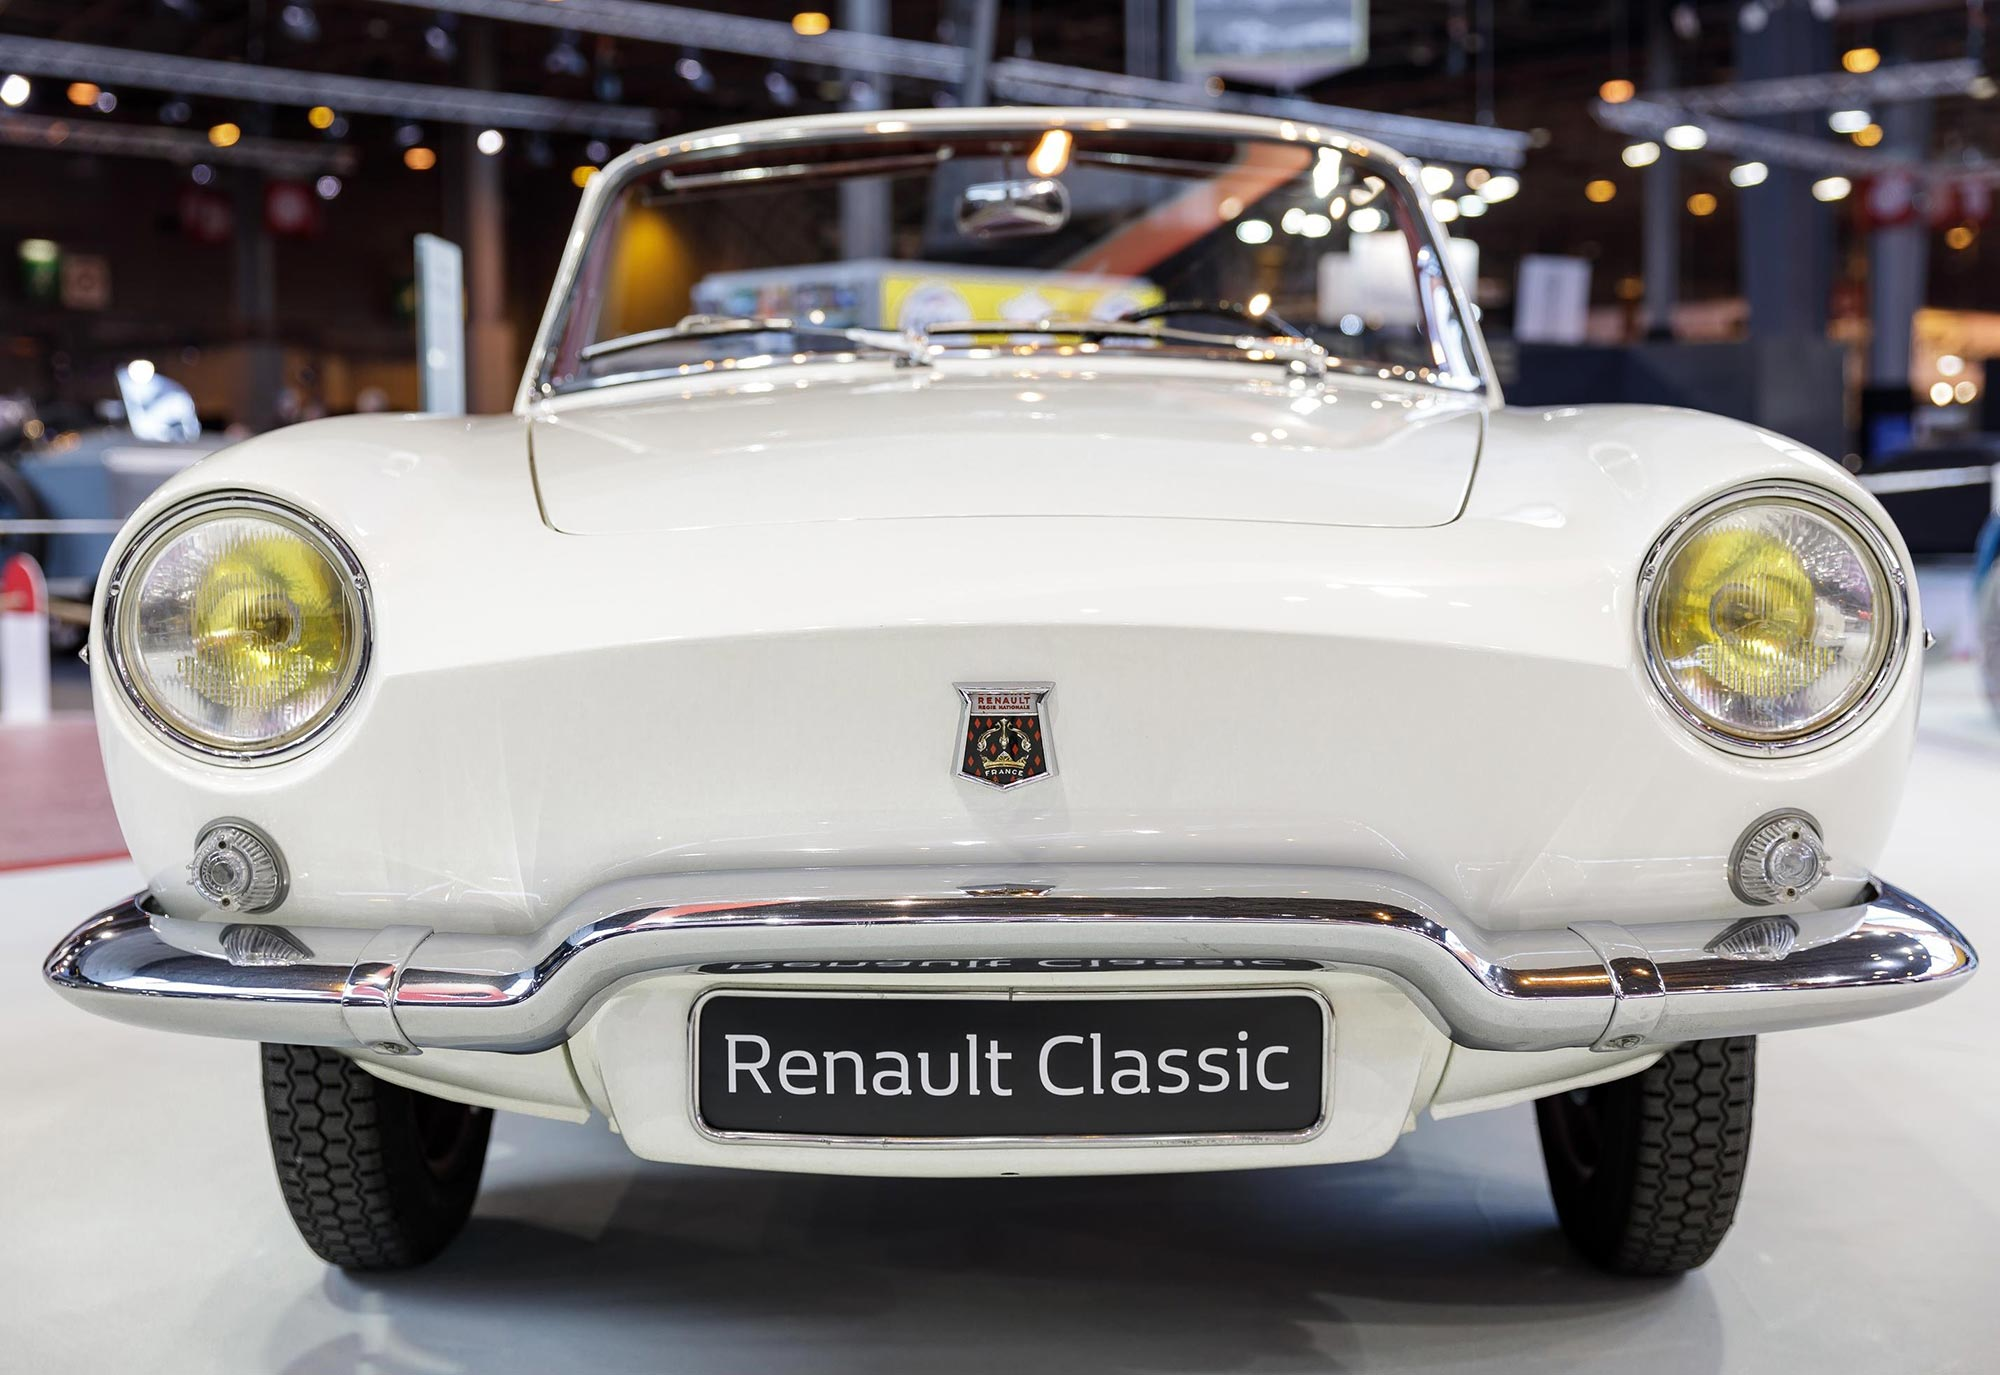 Renault_Floride_1961_at_Retromobile_2017_(1).jpg